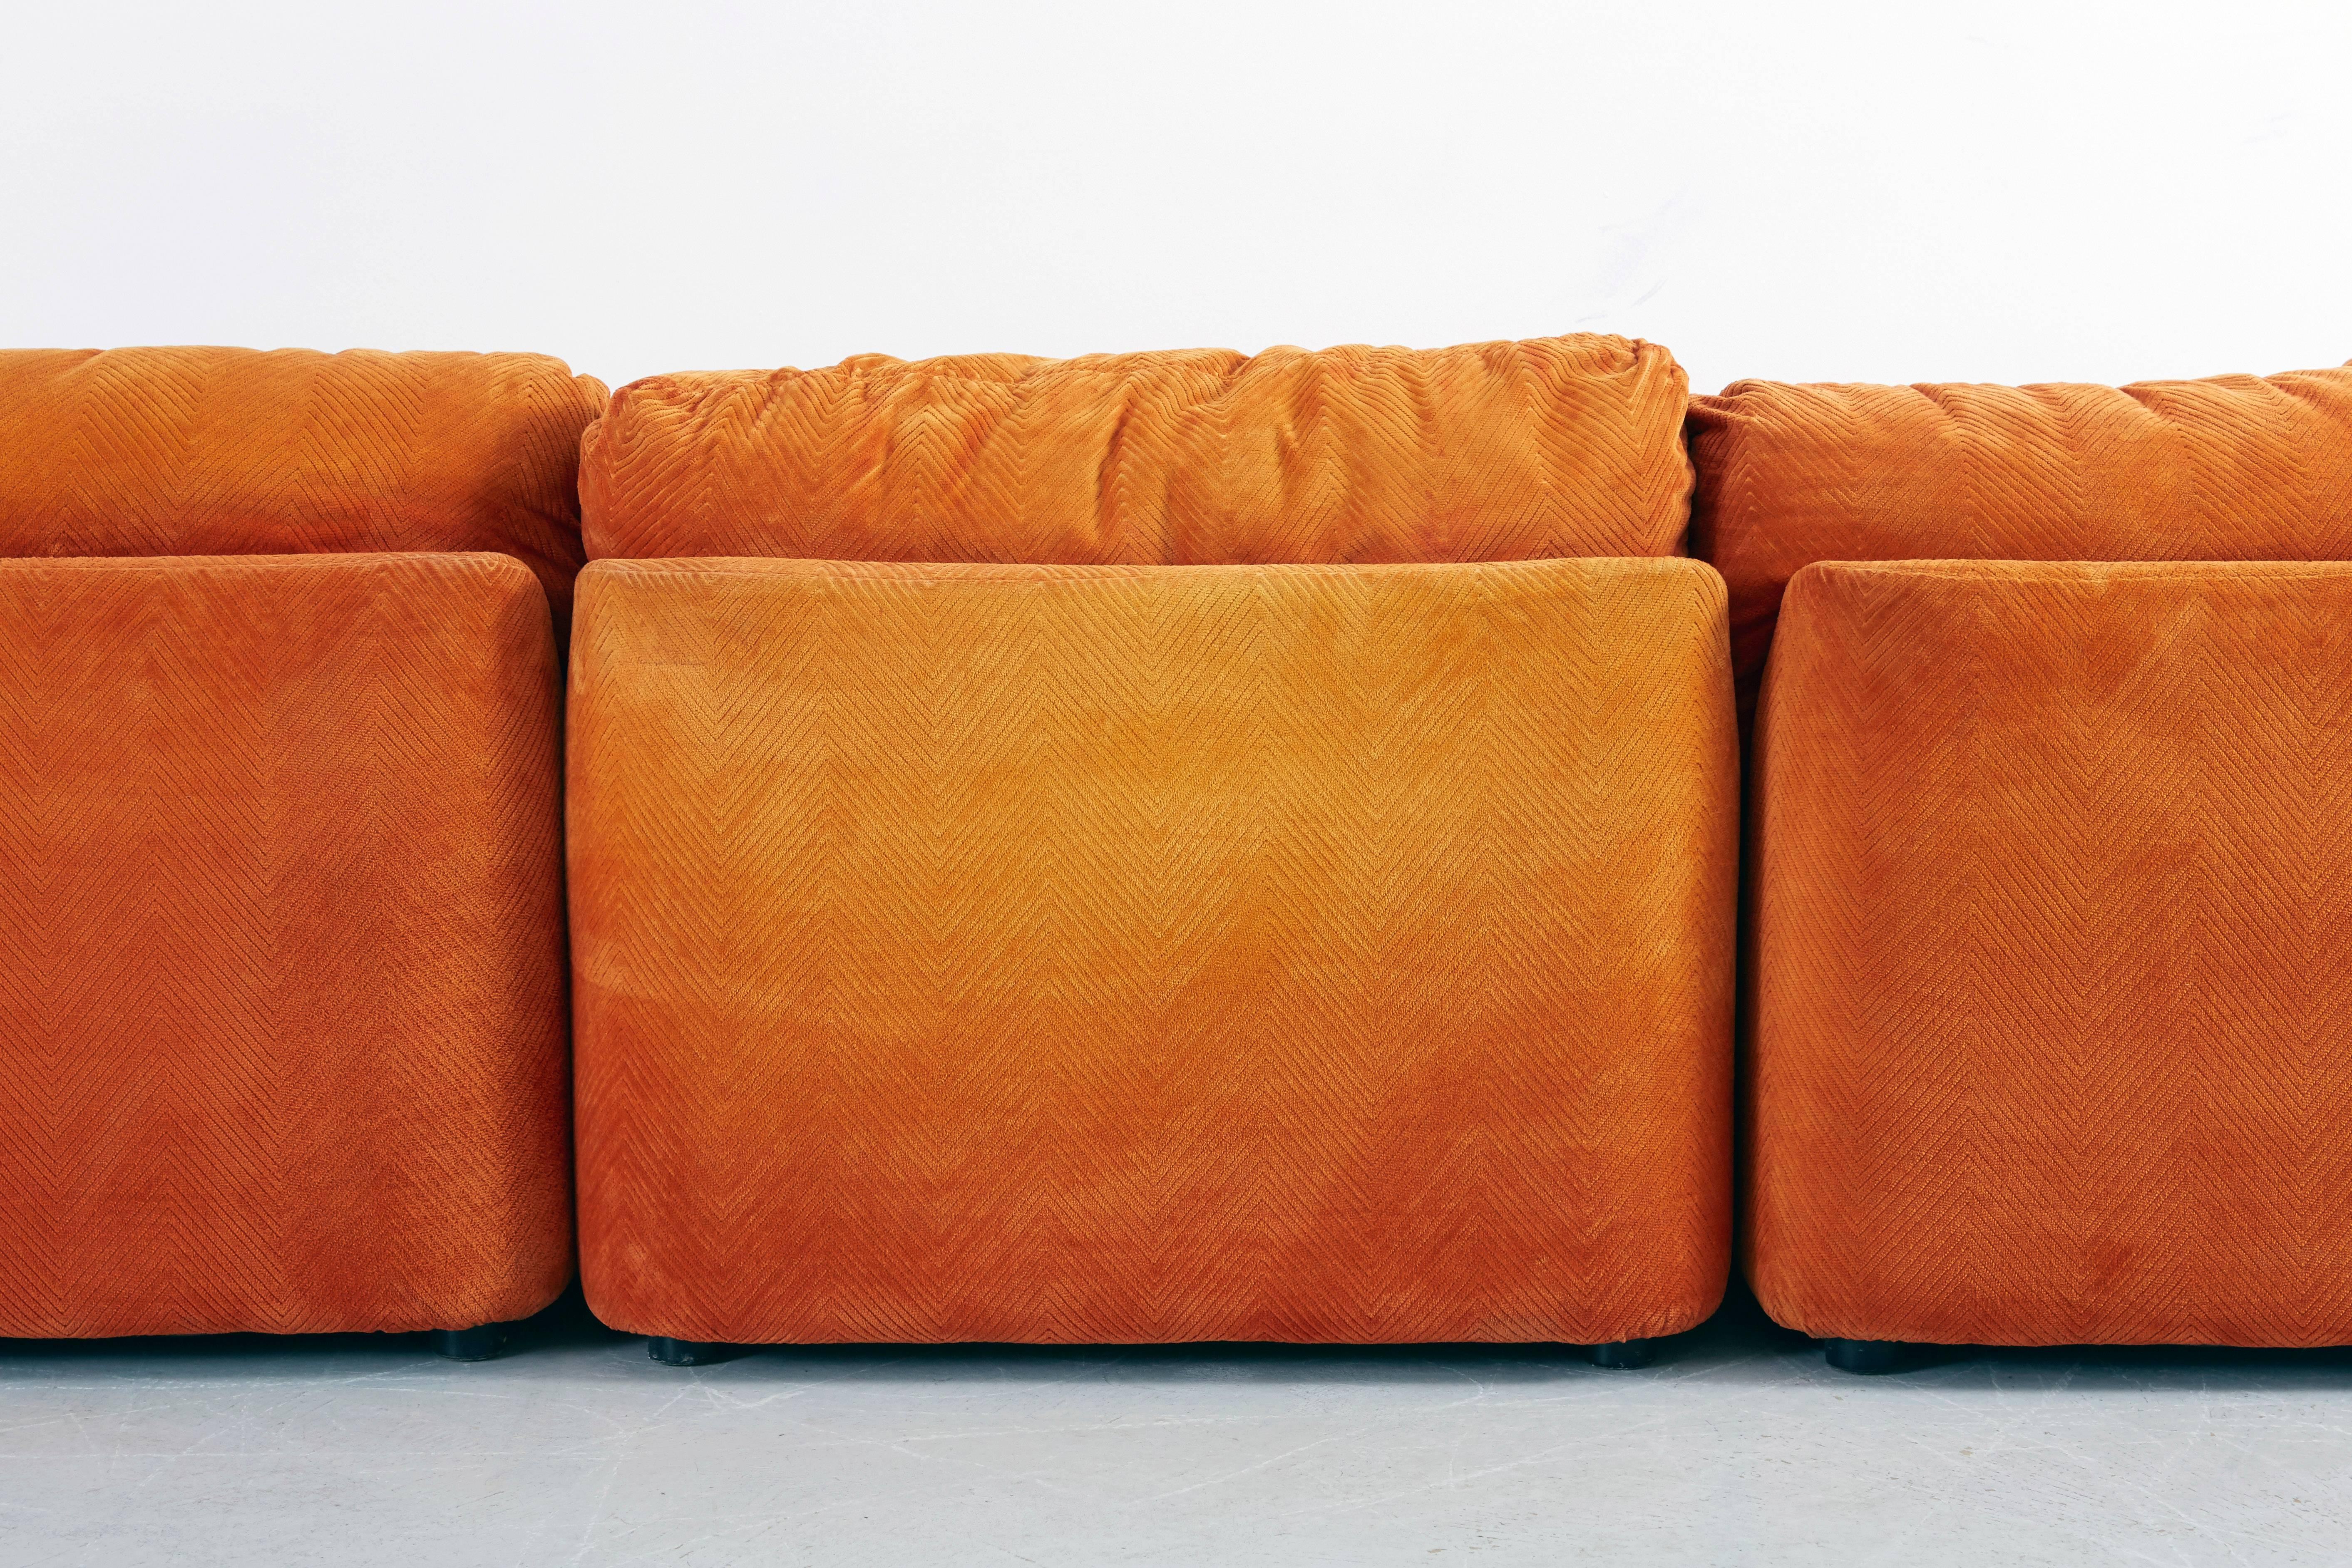 corner pin leather above sectional sofa living black table cushions floor fur sweeten the plus room rug orange white attracting with on wooden